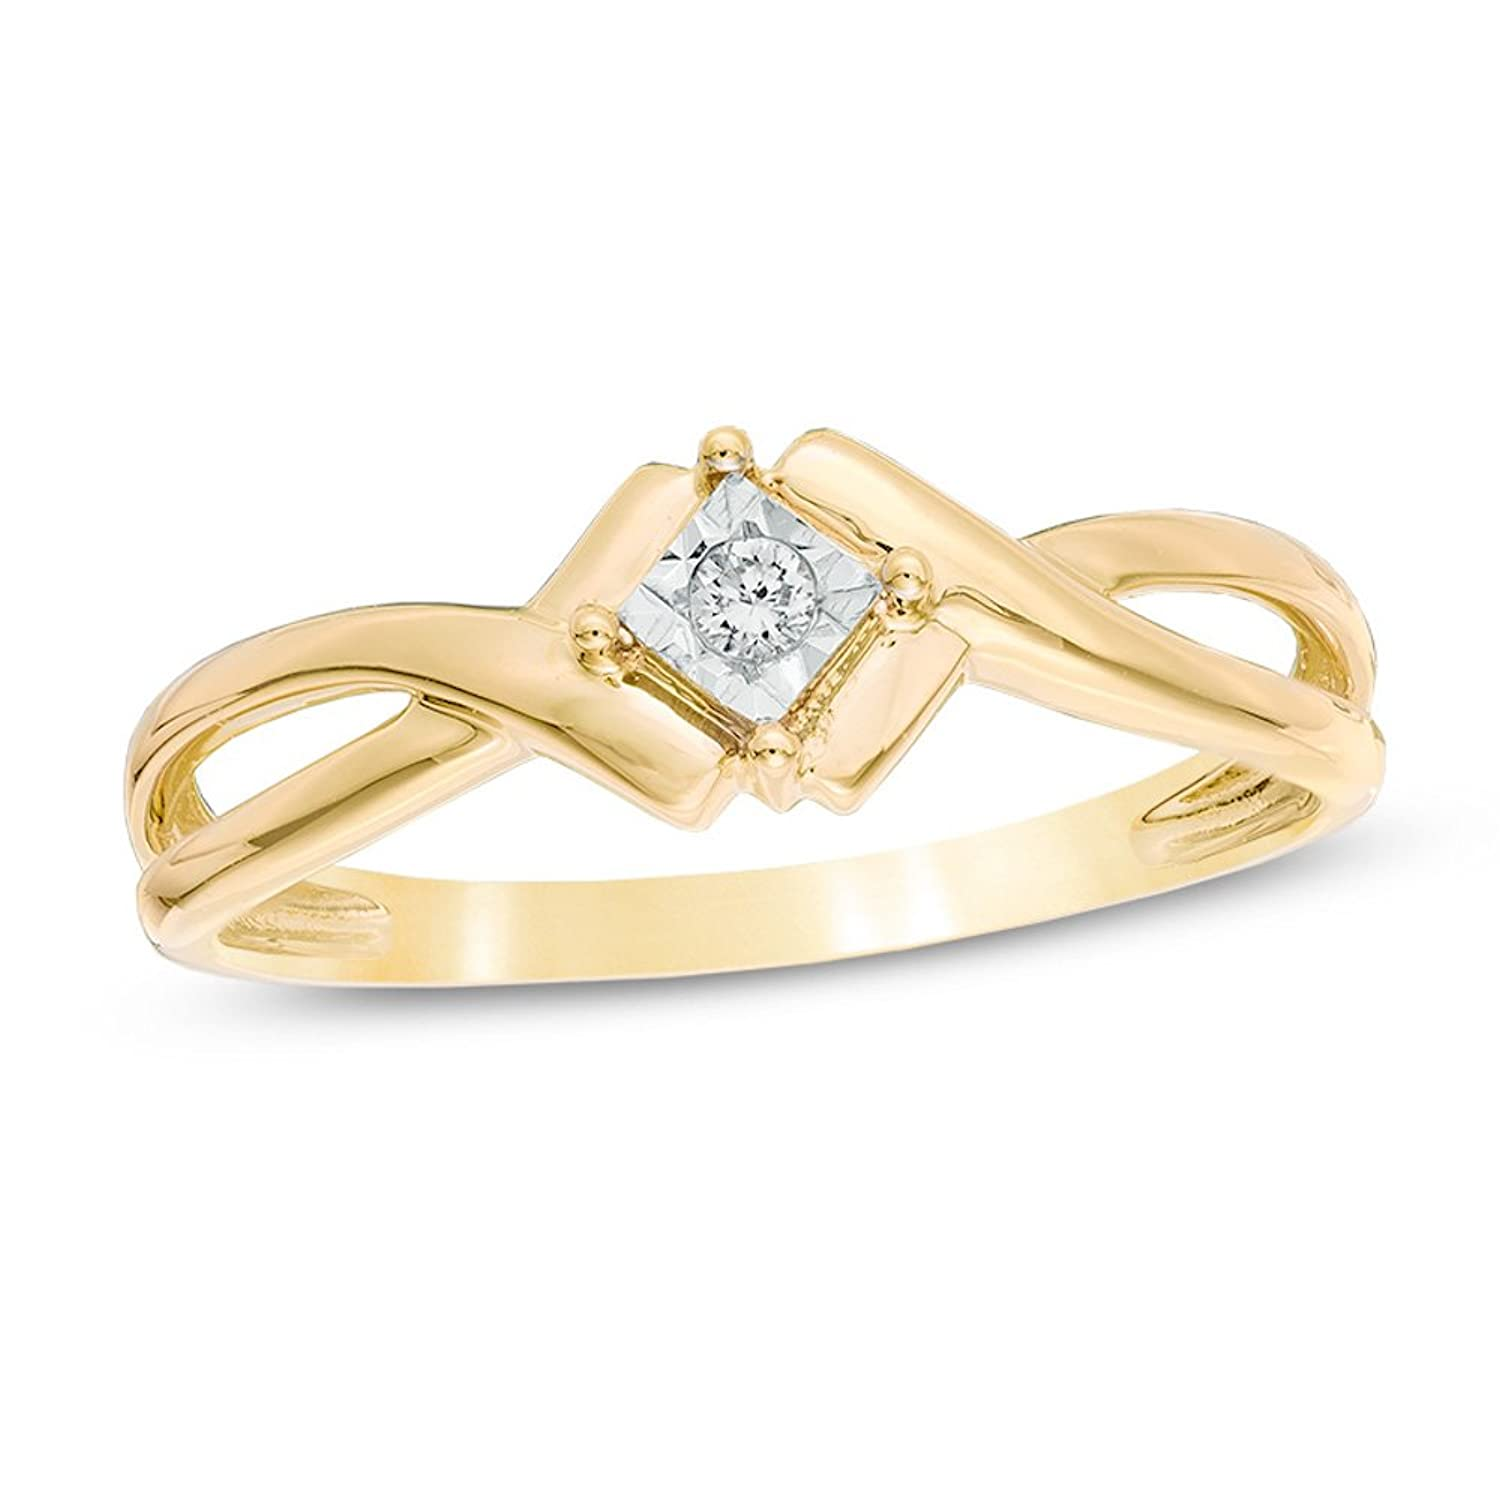 dbfc54df248b7 Diamond Promise Ring in 10k Yellow Gold and Rhodium Plated 10k White ...